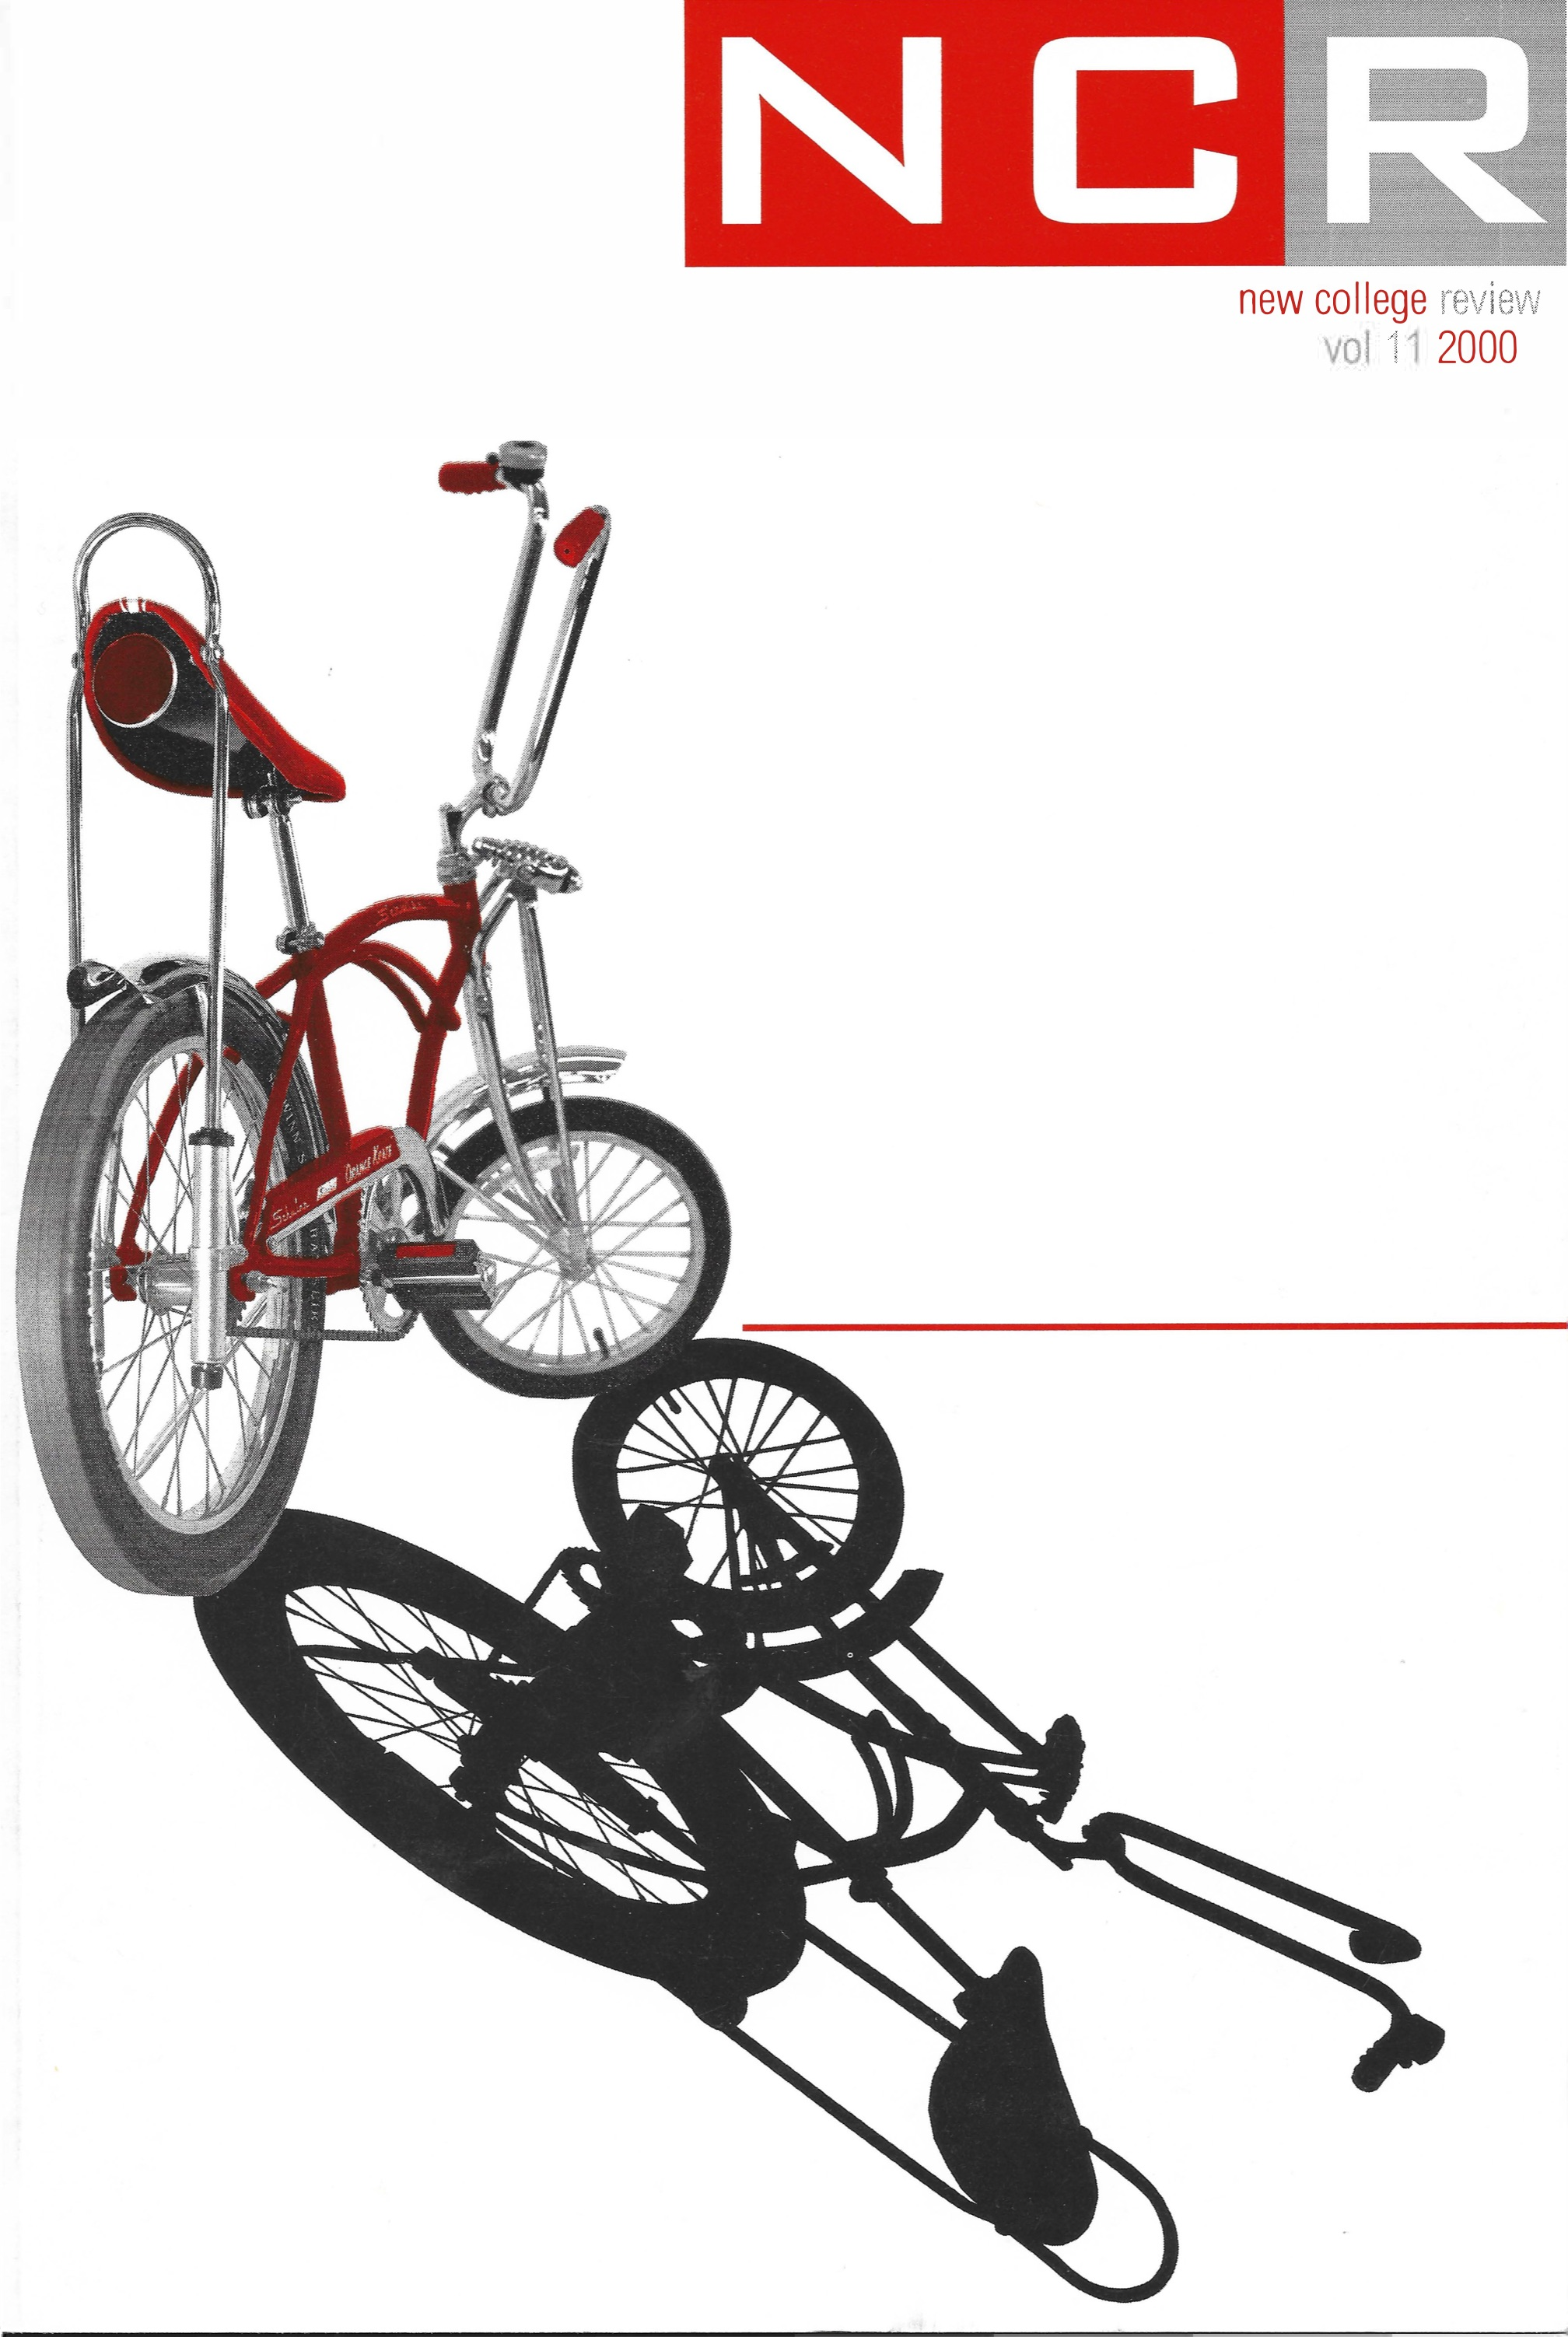 New College Review Volume 11 from 2000 with an image of a red bicycle